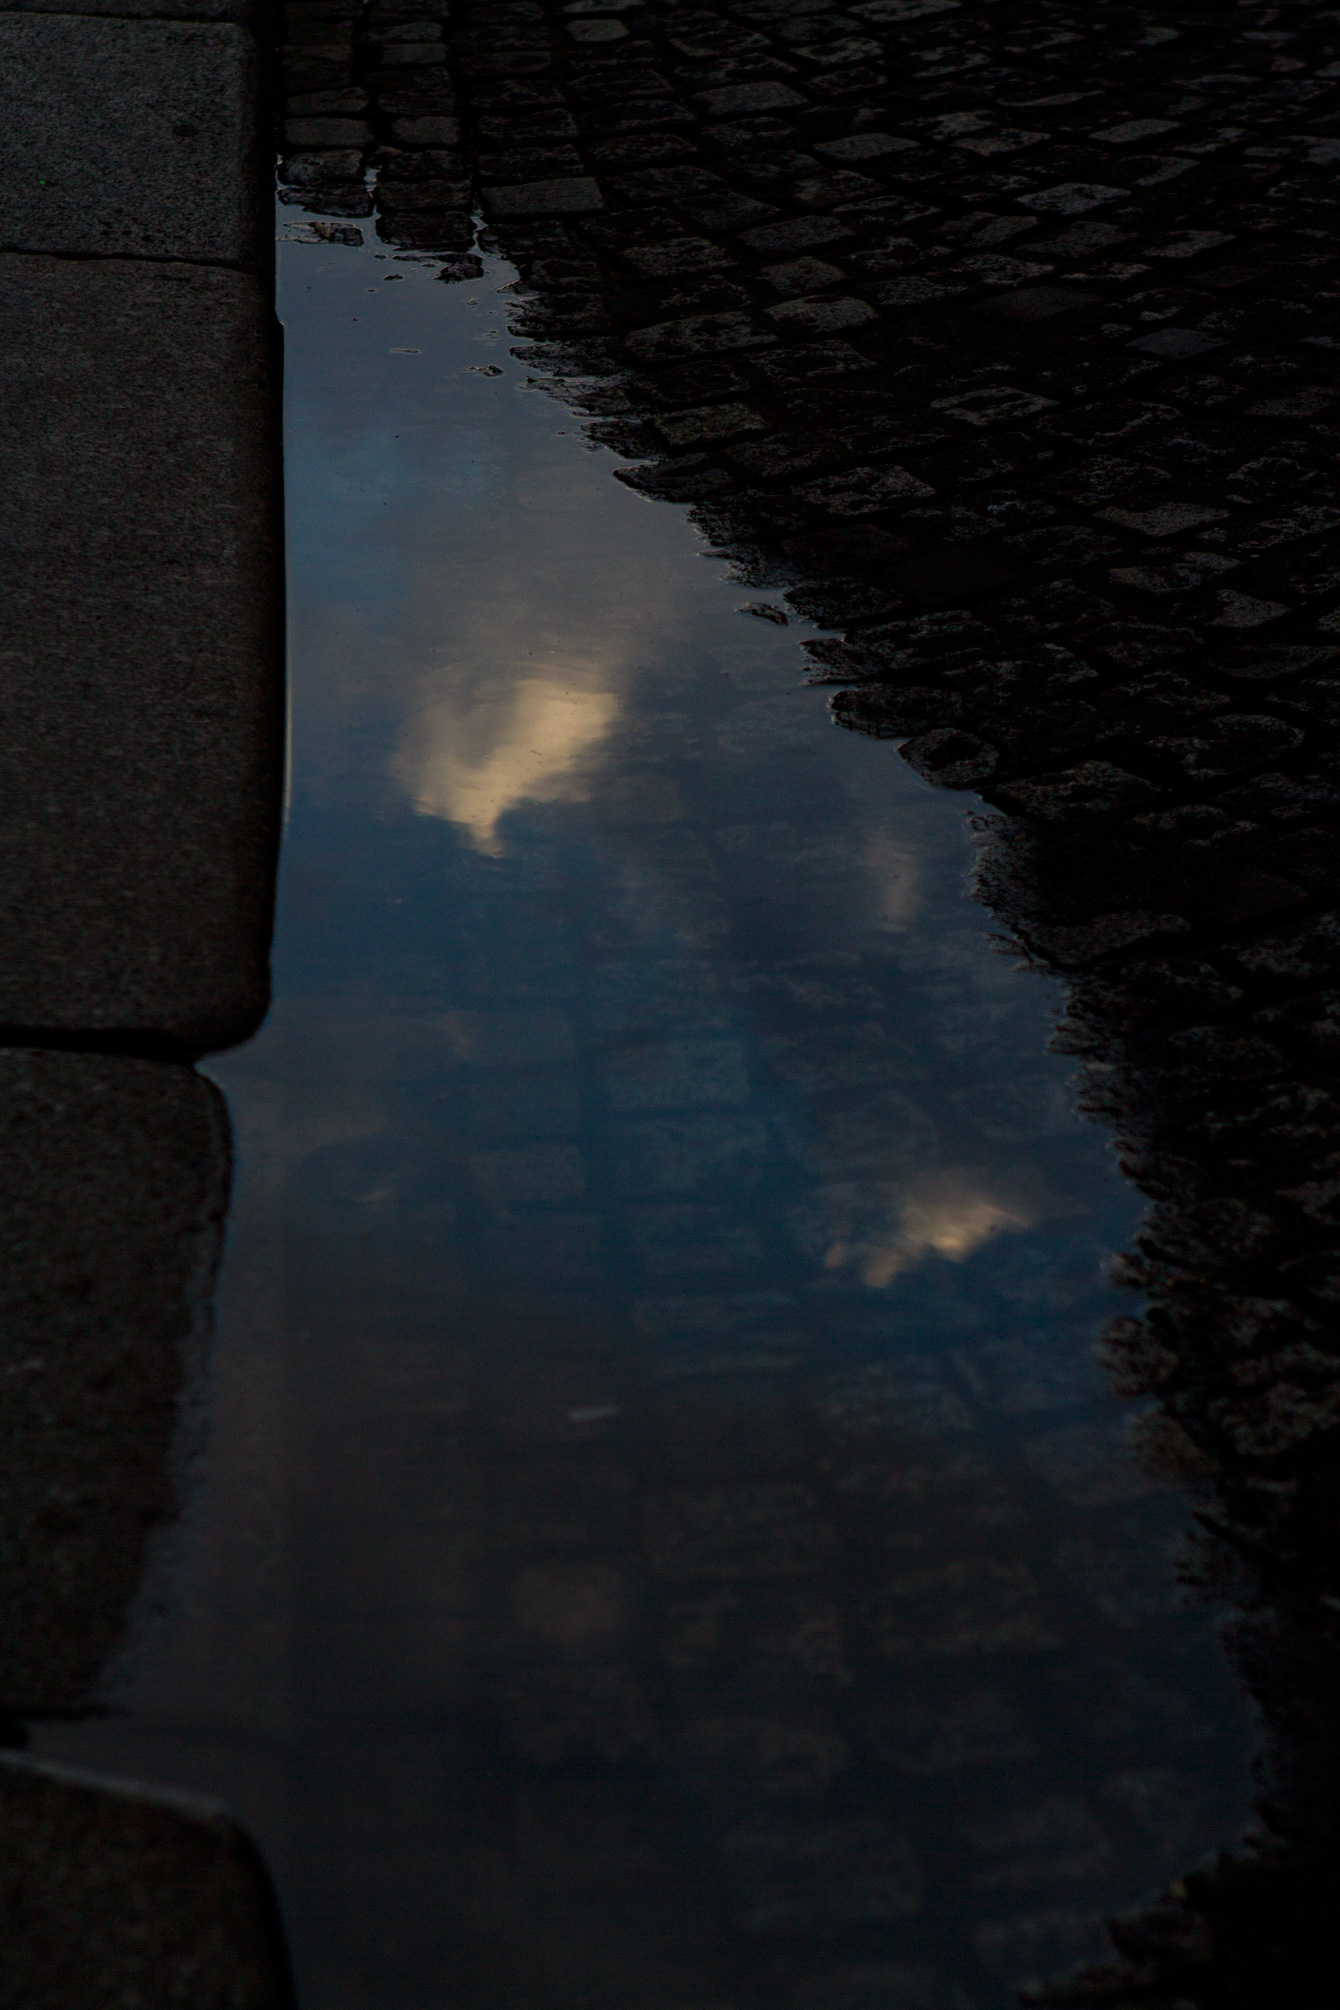 cloud-puddle-reflection-paris-cobbles-street